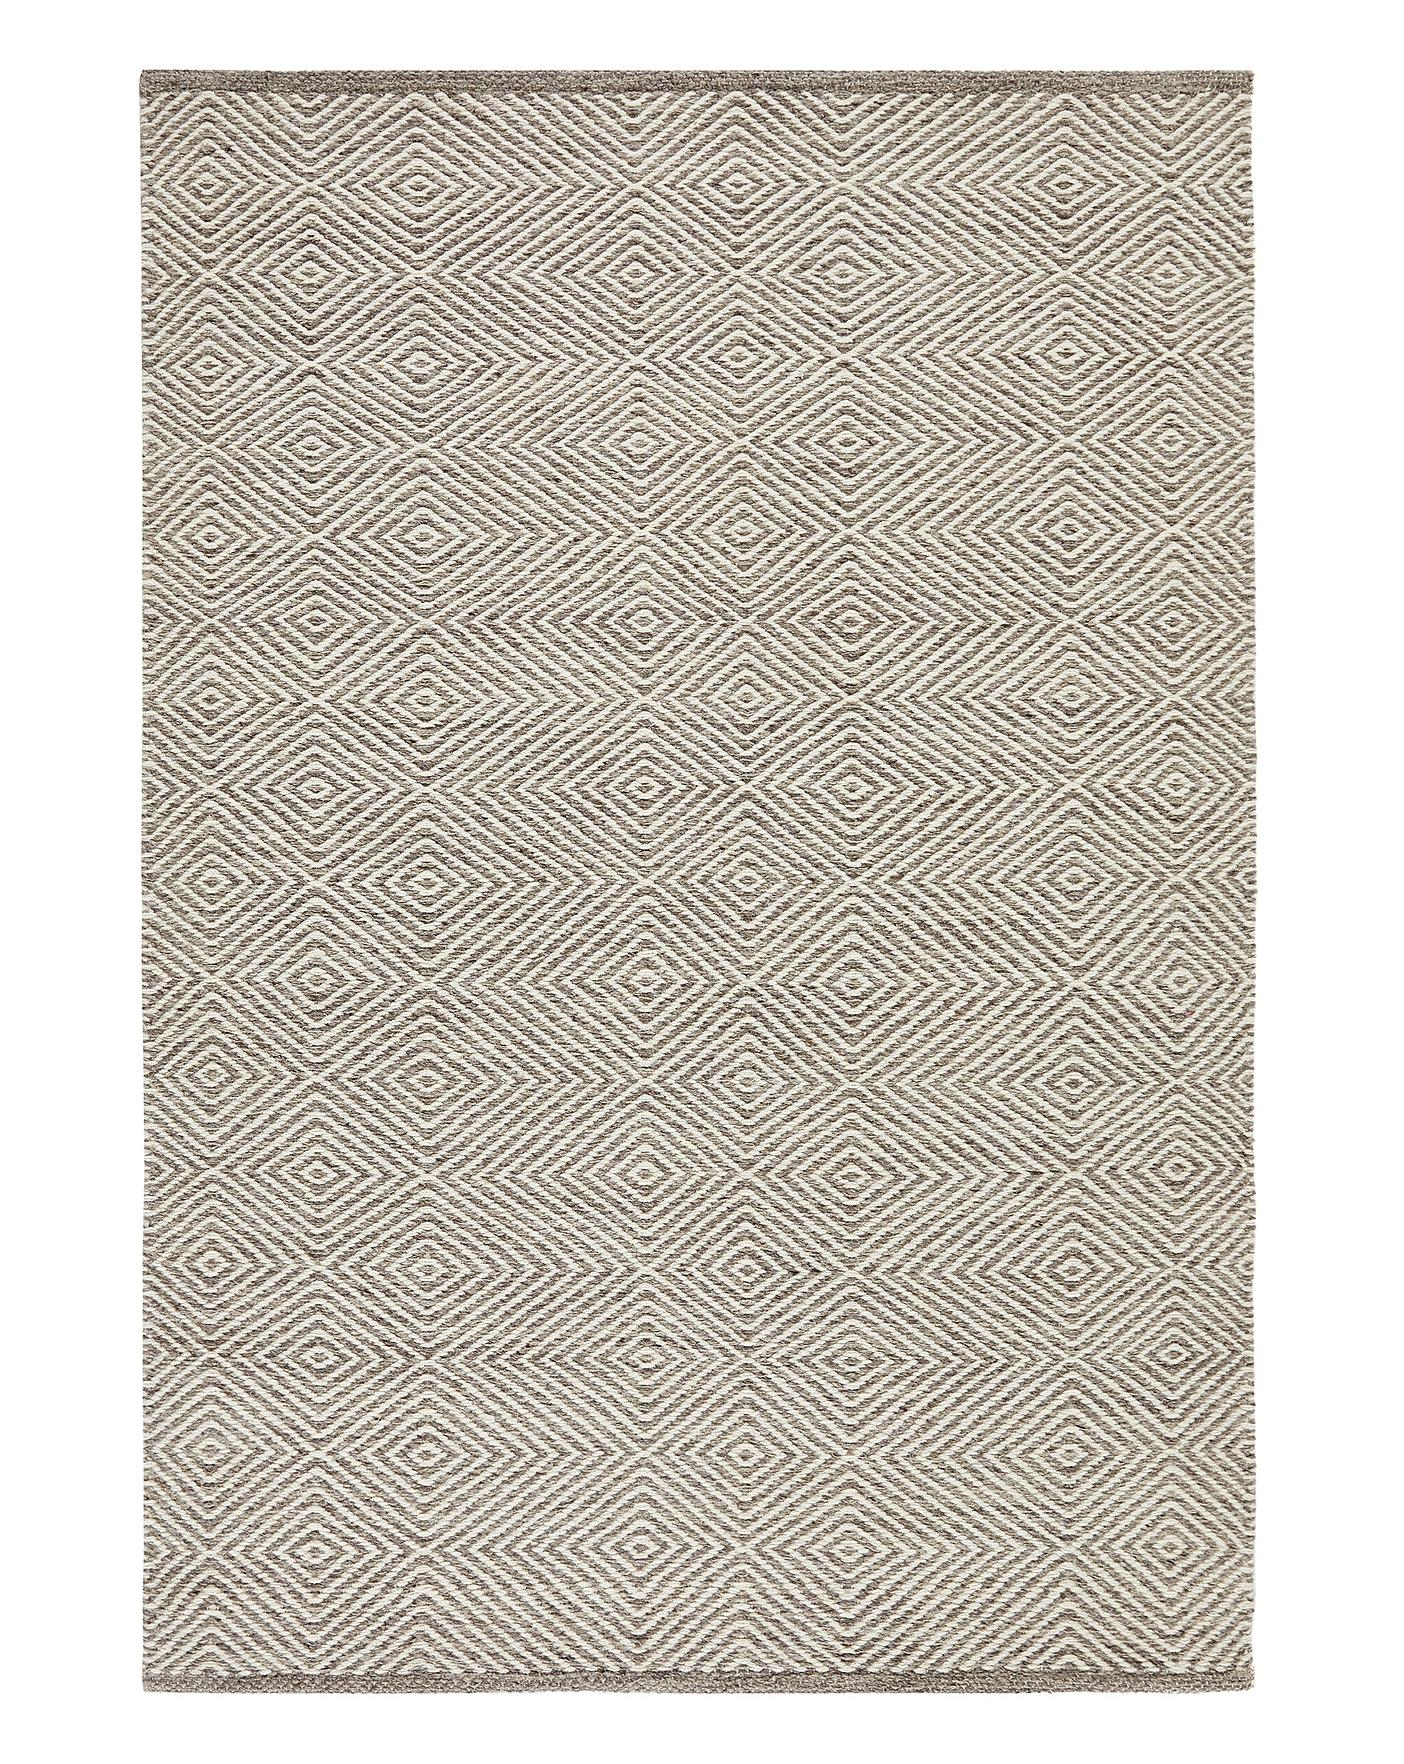 Estelle Wool And Viscose Rug Large